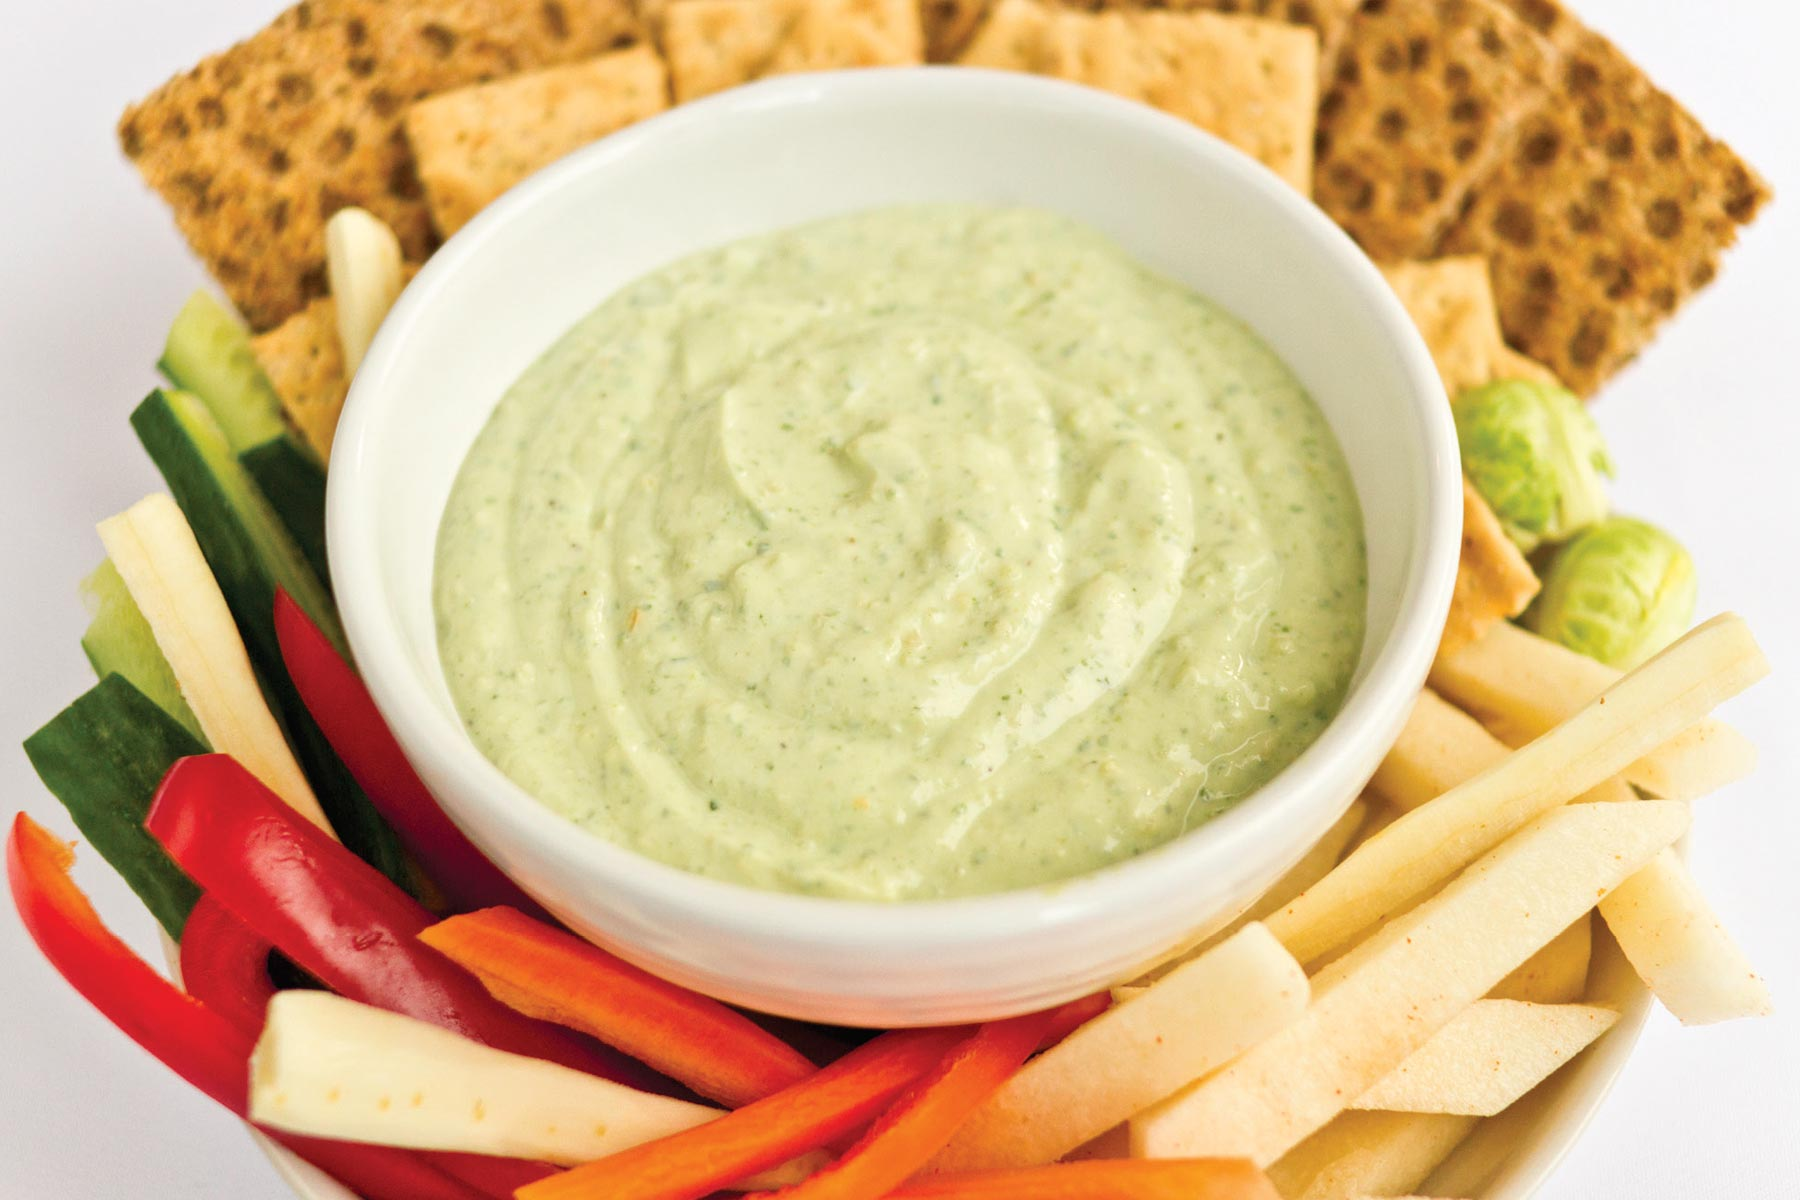 This Savory Lemon Dip recipe is Ornish Lifestyle Medicine™ Approved and posted by Sentara Healthcare in Hampton Roads